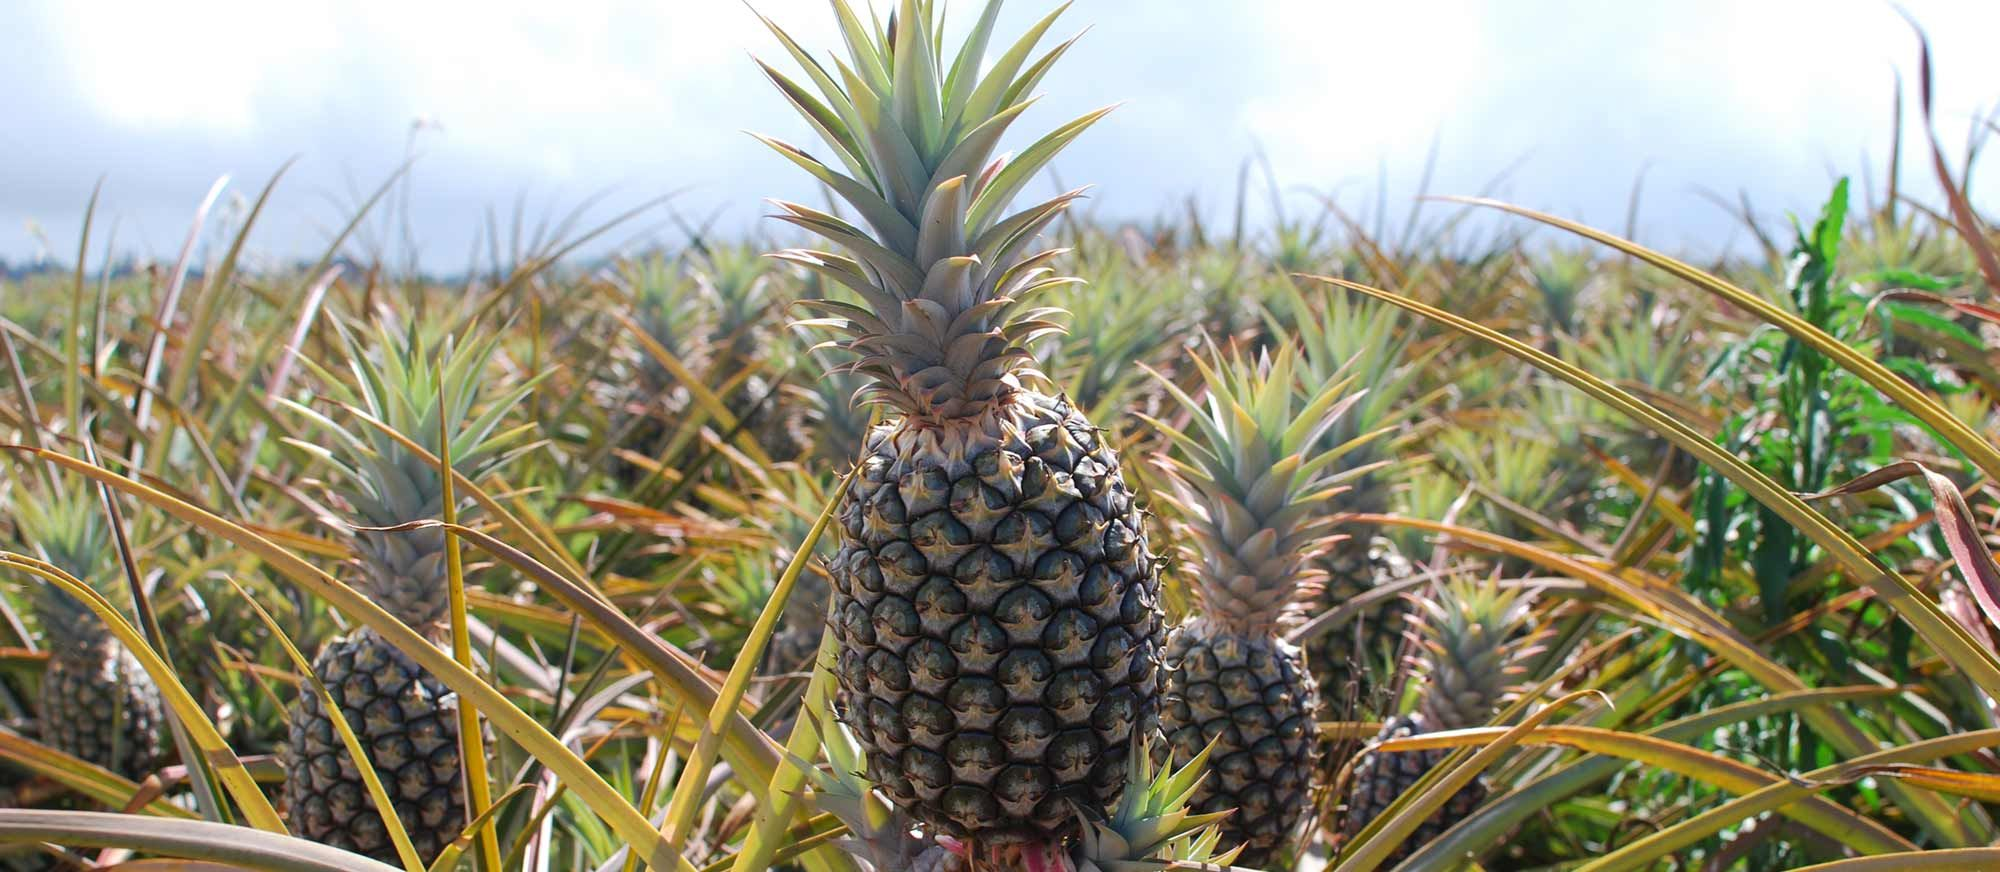 Maui Pineapple Tour - Maui Pineapple Tours | One of the many fun family activities or things to do on Maui! Maui Tour | Tours In Maui